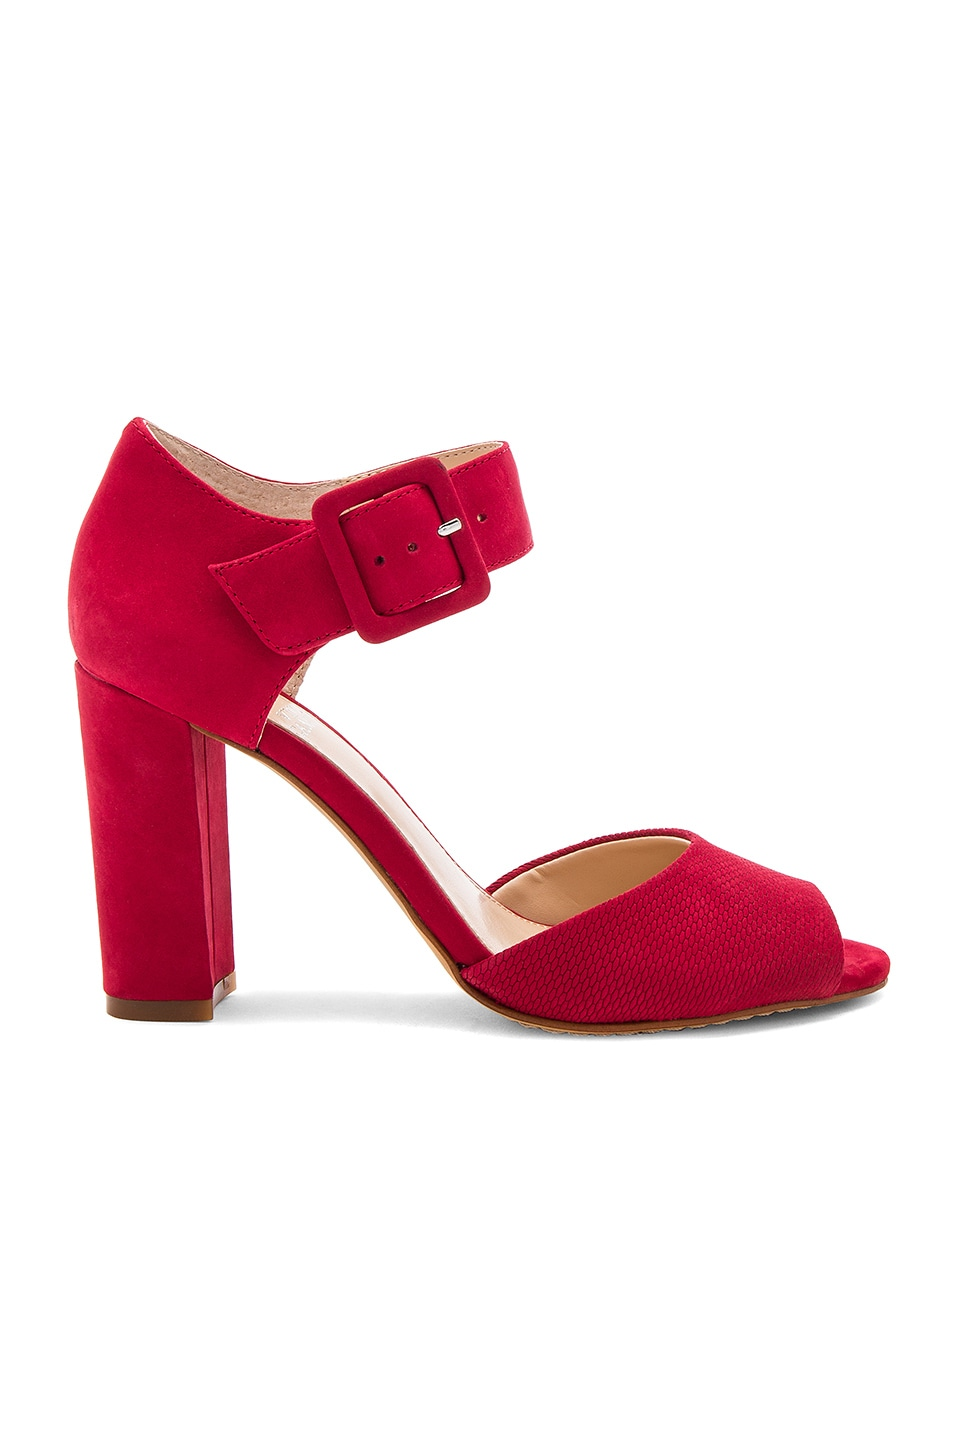 Photo of Shelbine Heel by Vince Camuto shoes